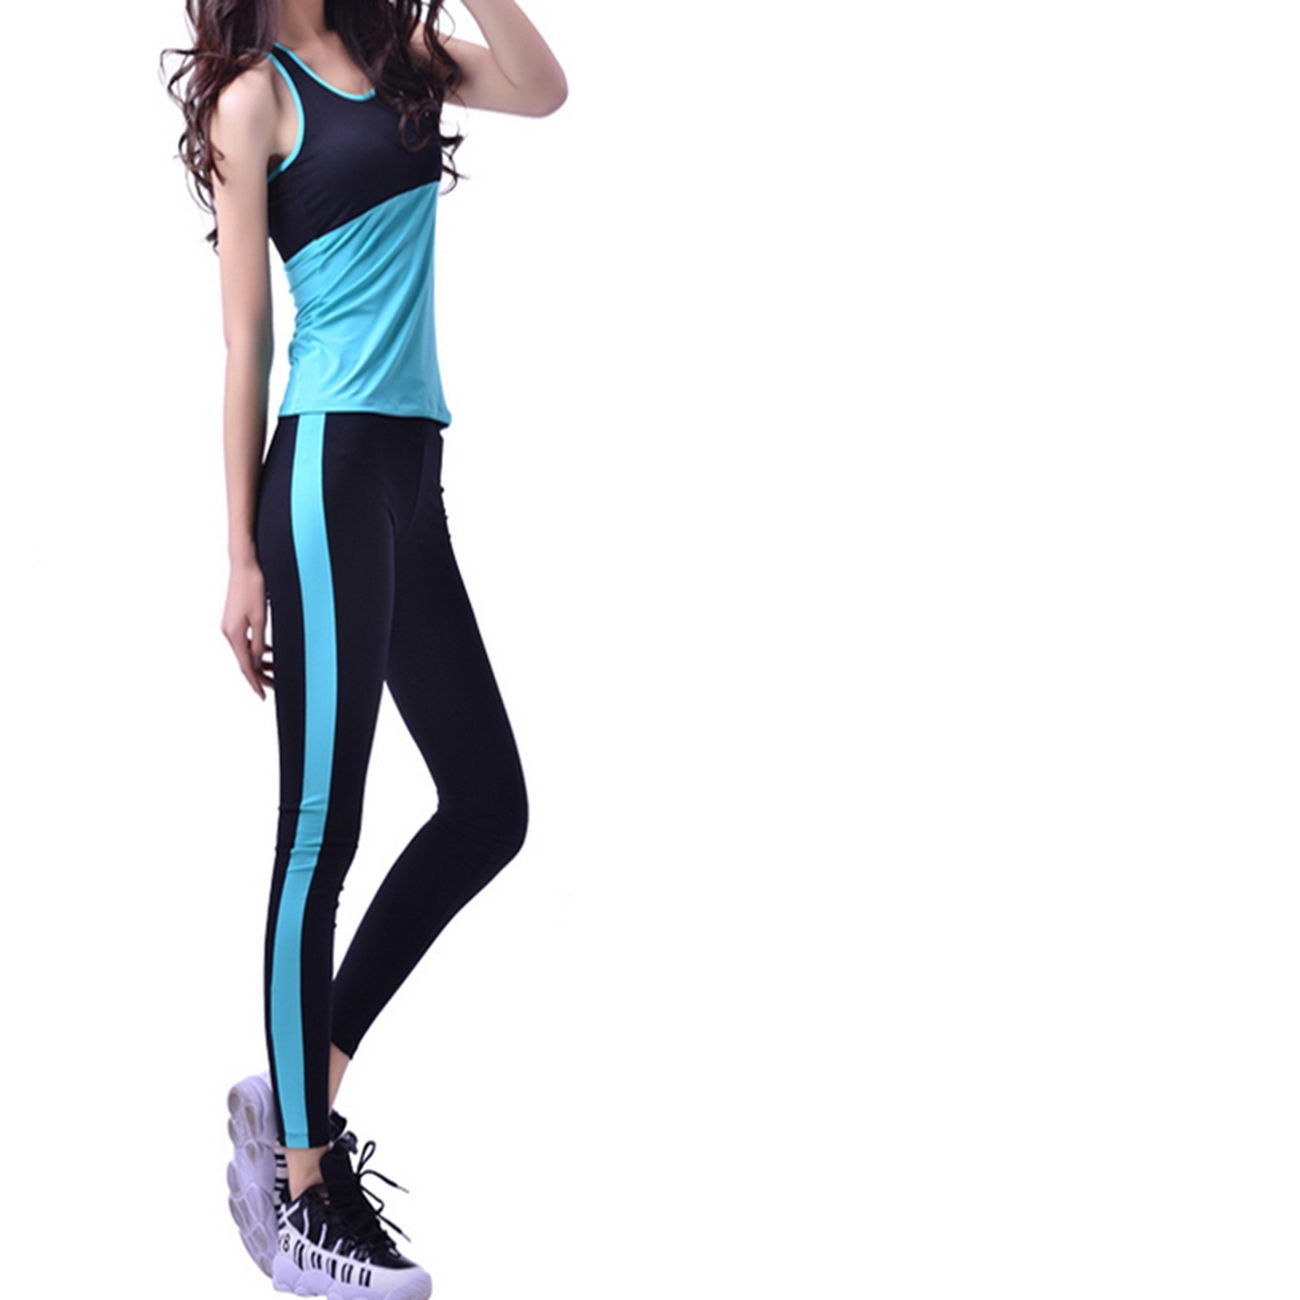 WENXINJIA Spring and summer spell color, running, sports, suits, women yoga clothing was thin nylon gym, sports, clothes spring. , Gym sportswear yoga clothes, yoga clothes suit sportswear, -01